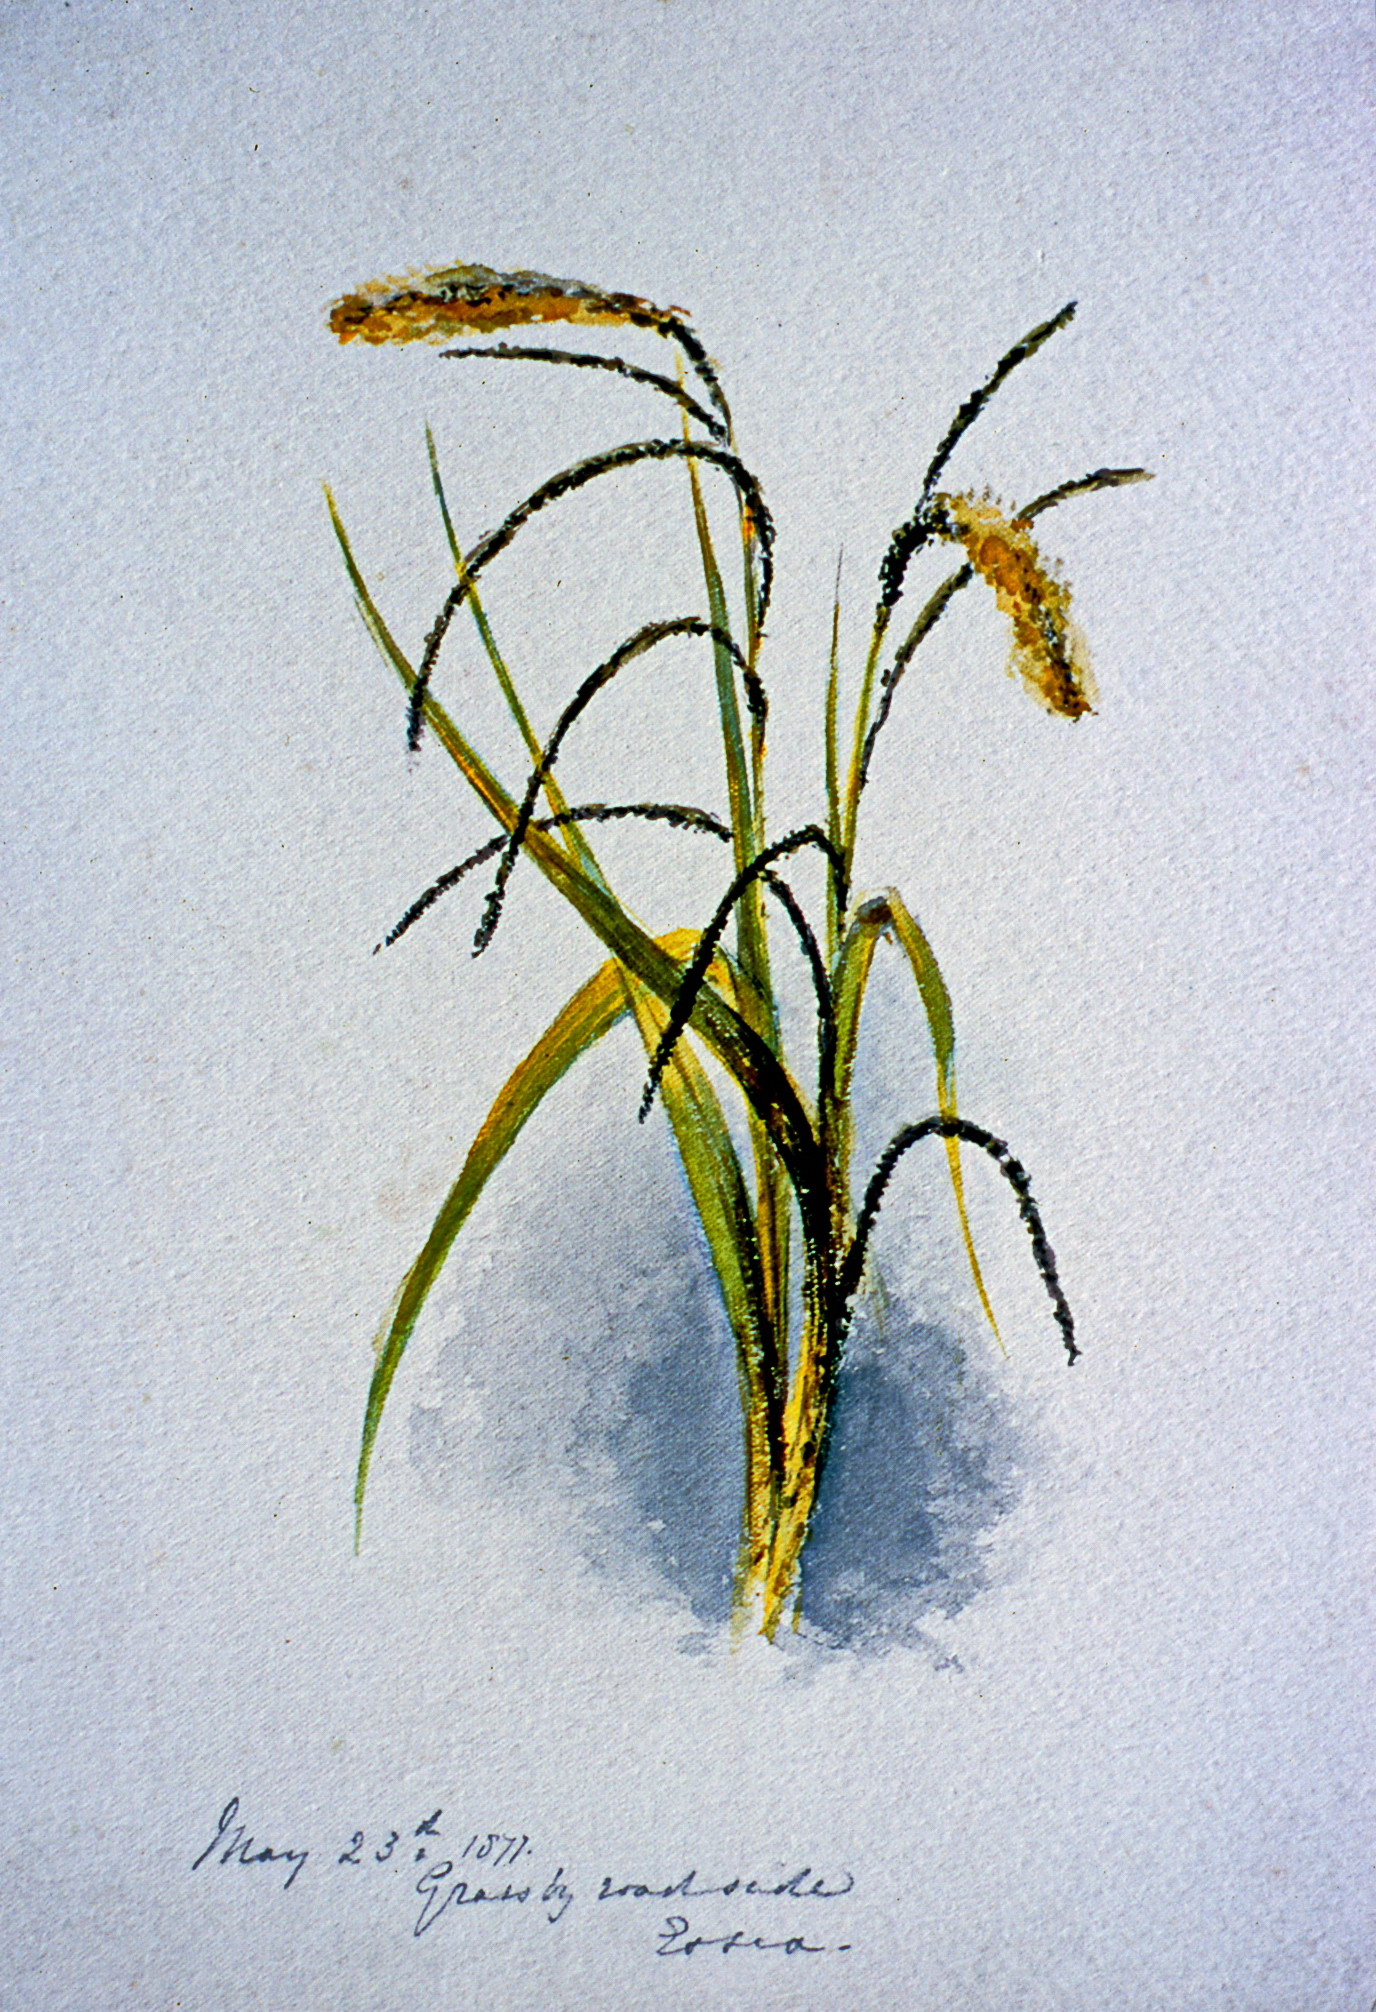 Grassy, (illegible) Side, (illegible), May 23 1871 . 1871, Julia Bullock Webster, watercolour on paper, 25.5 cm x 18 cm, 2003.02.11, gift of The Grist Mill at Keremeos